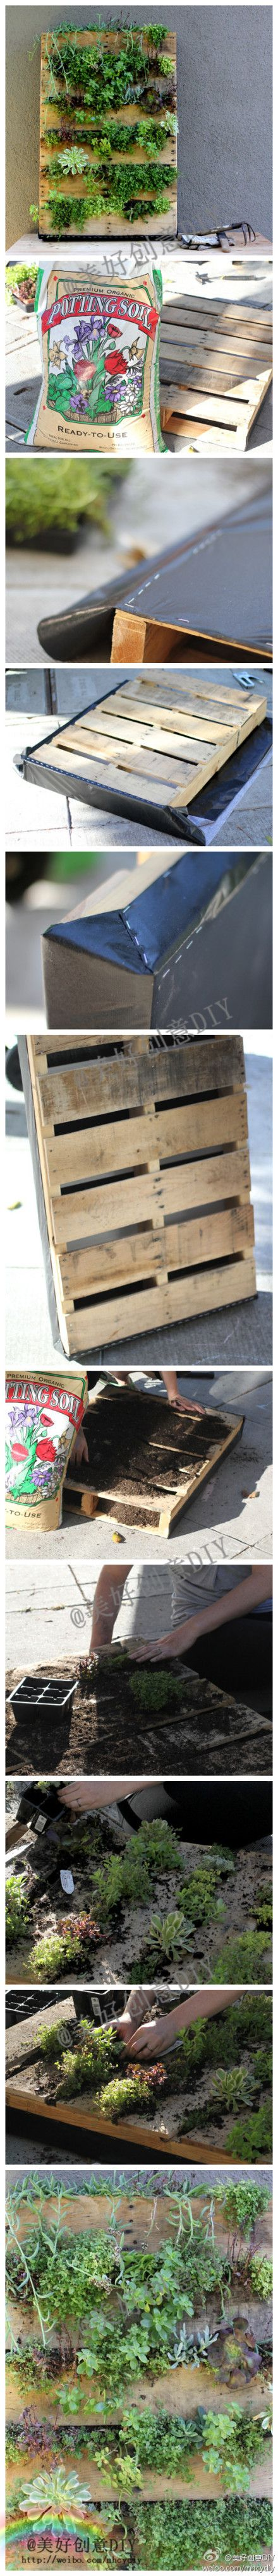 pallet recycling - don't have that many pallets, but maybe to expand the apartment patio herb garden next year?